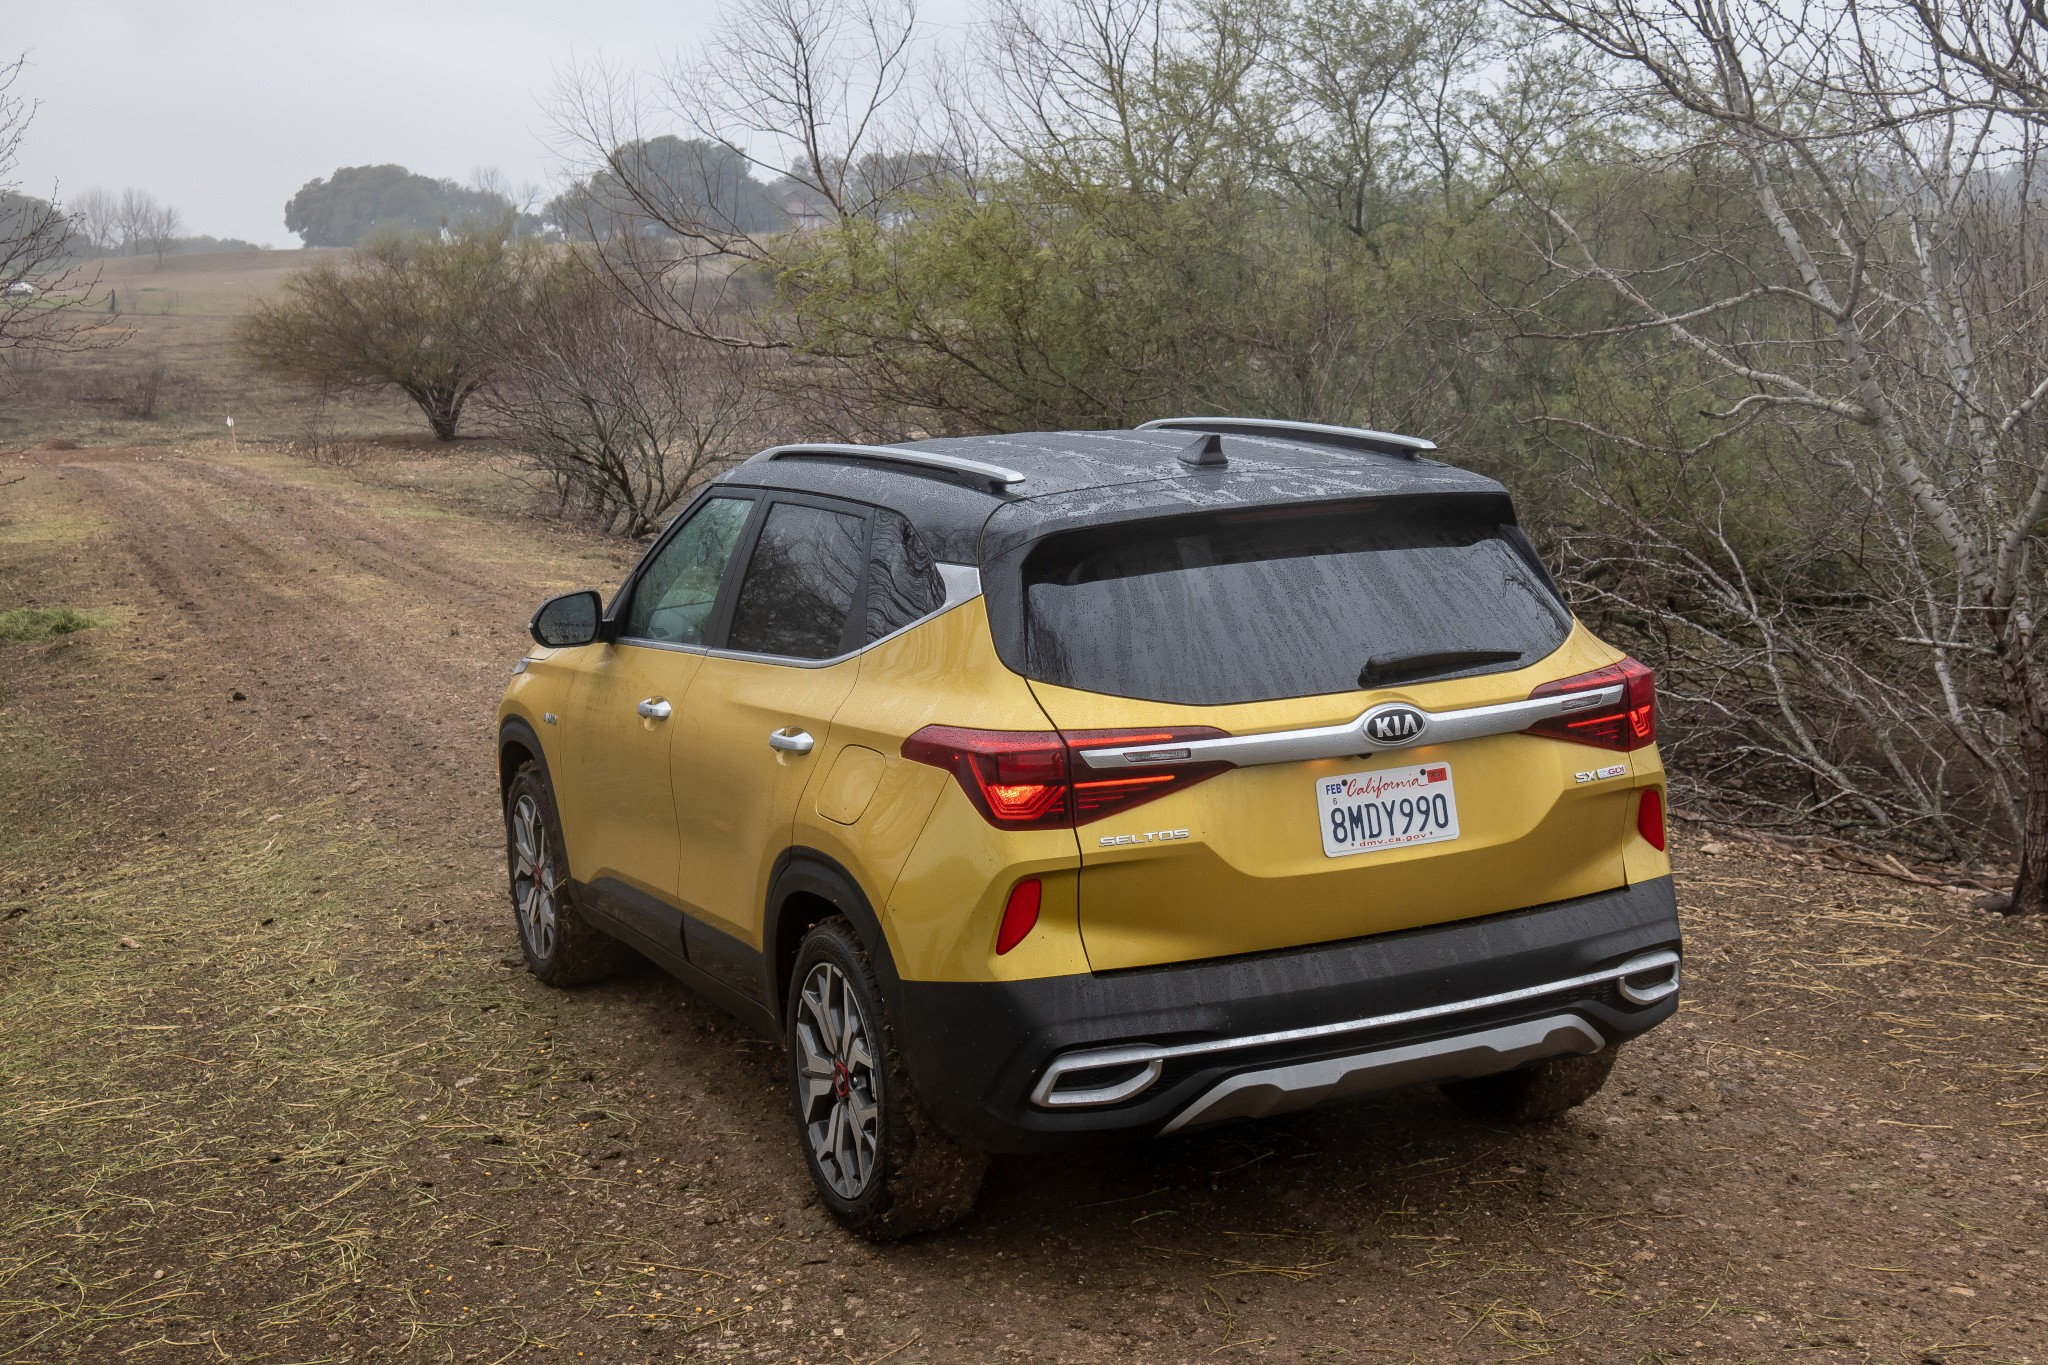 10 Biggest News Stories of the Week: 2021 Kia Seltos, GMC Yukon Fight for First